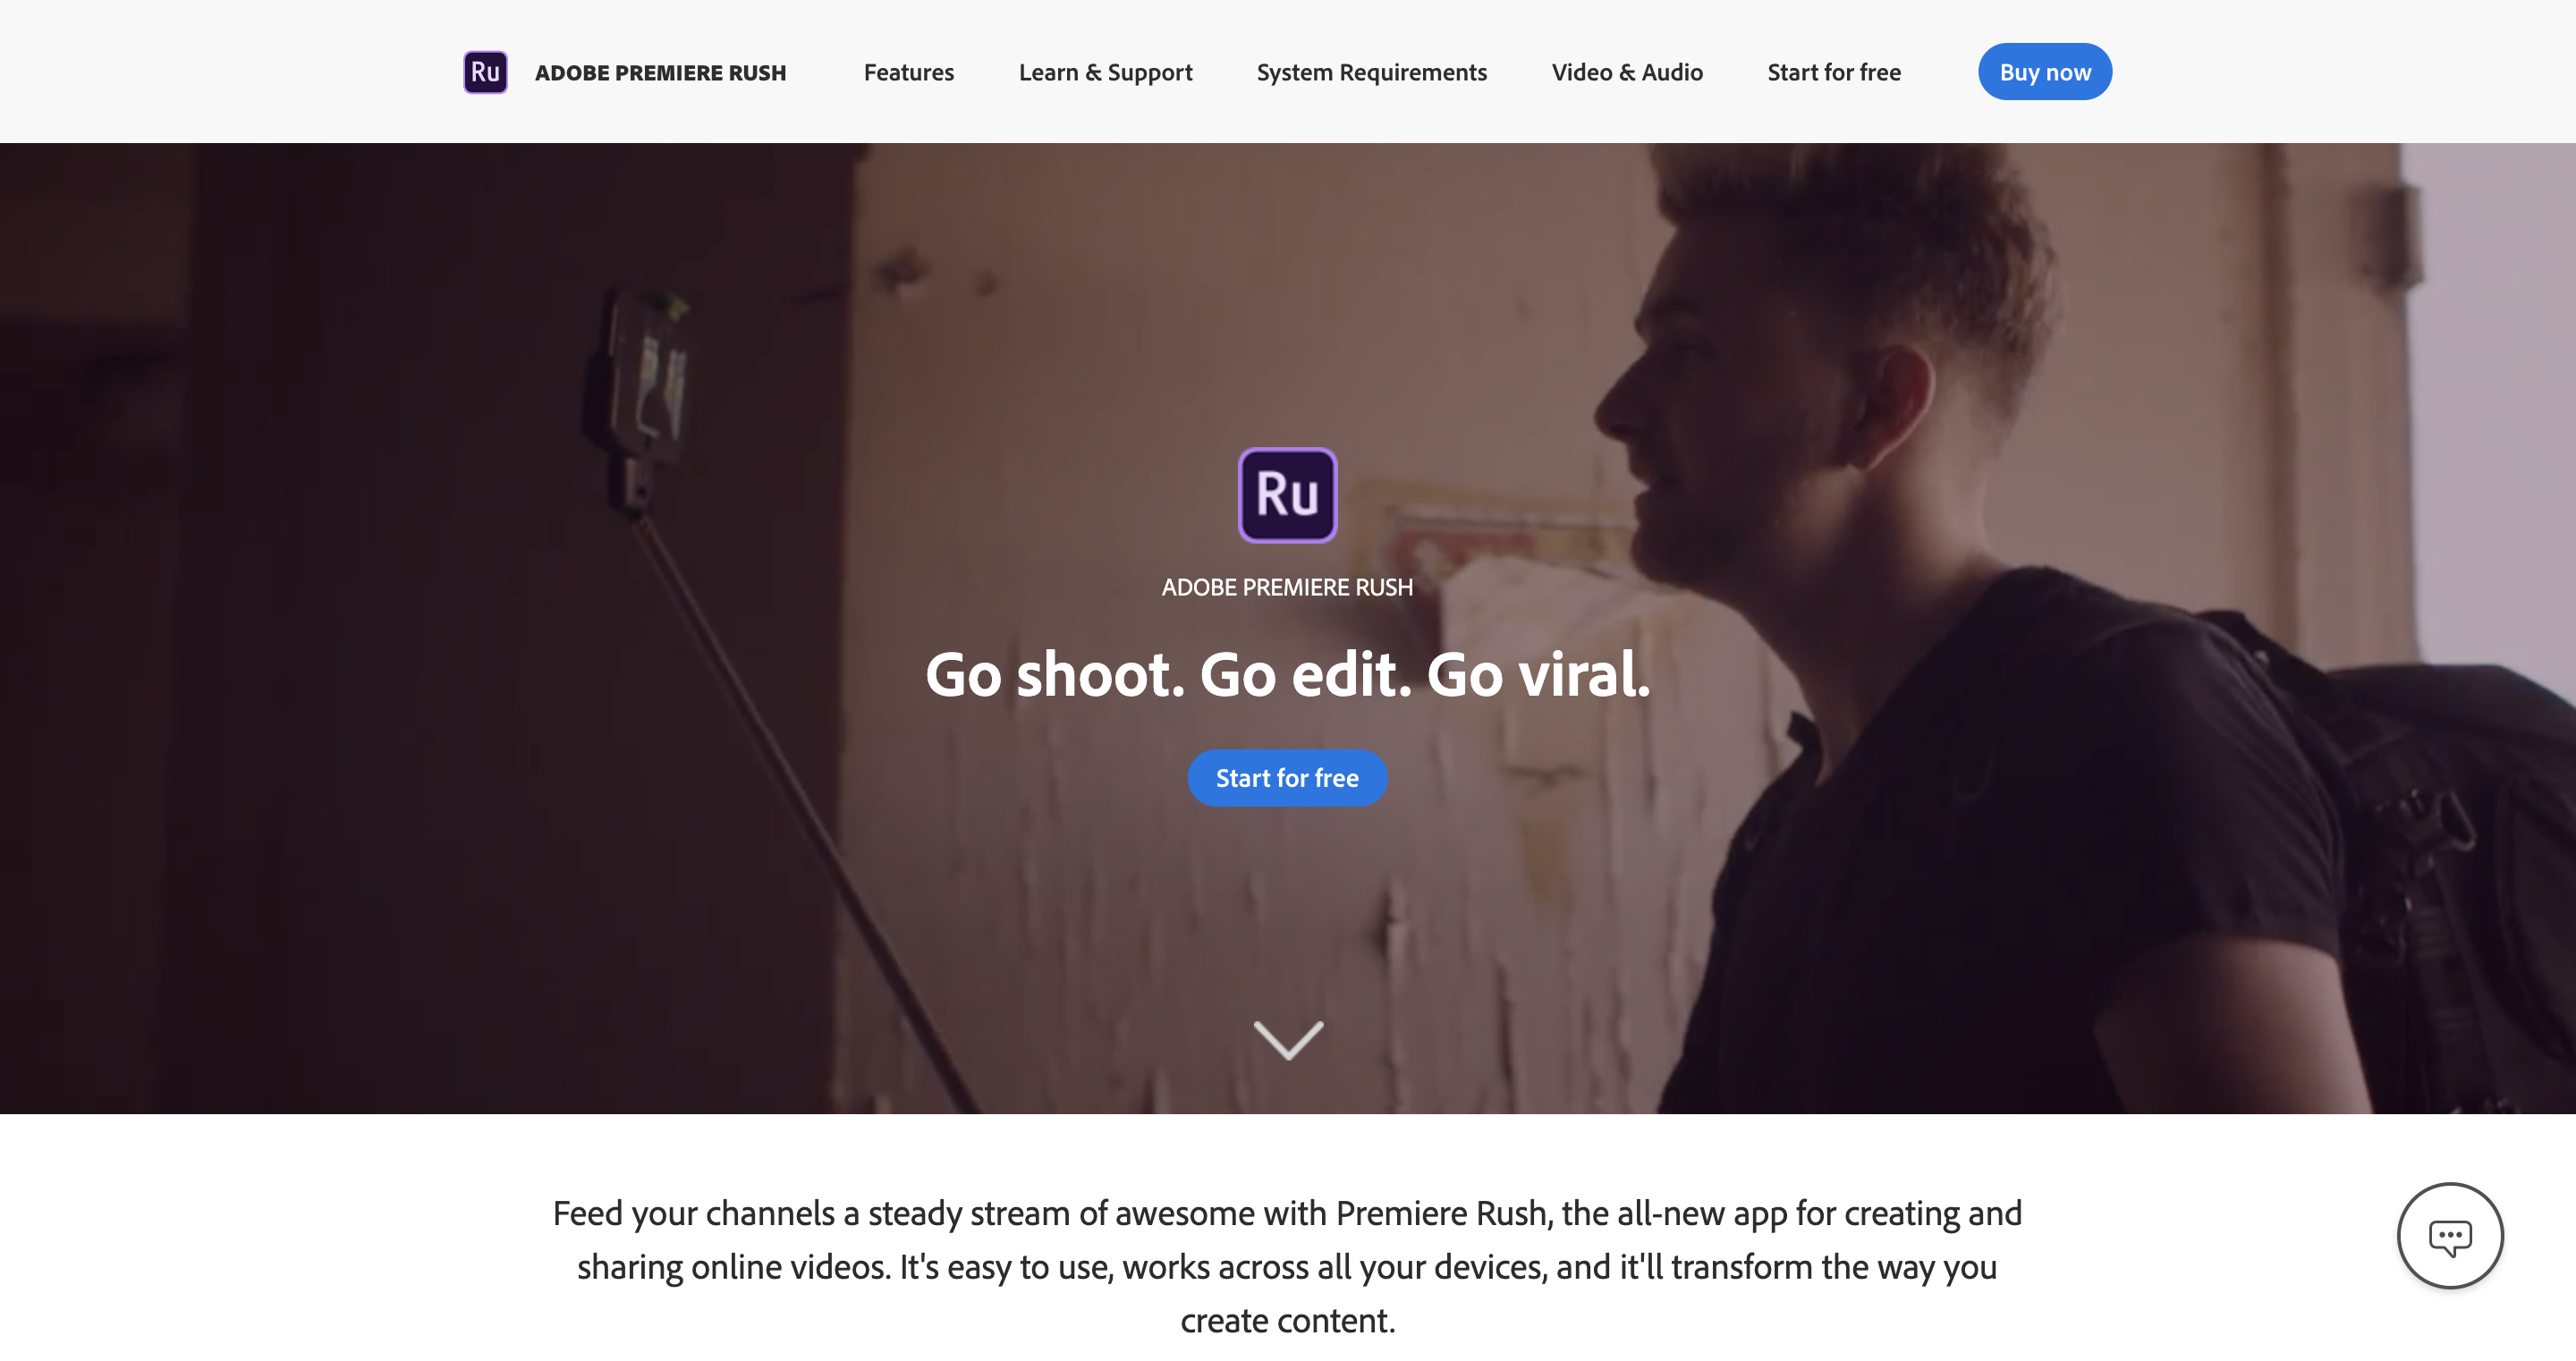 Screenshot of Adobe Premiere Rush, a video editing tool